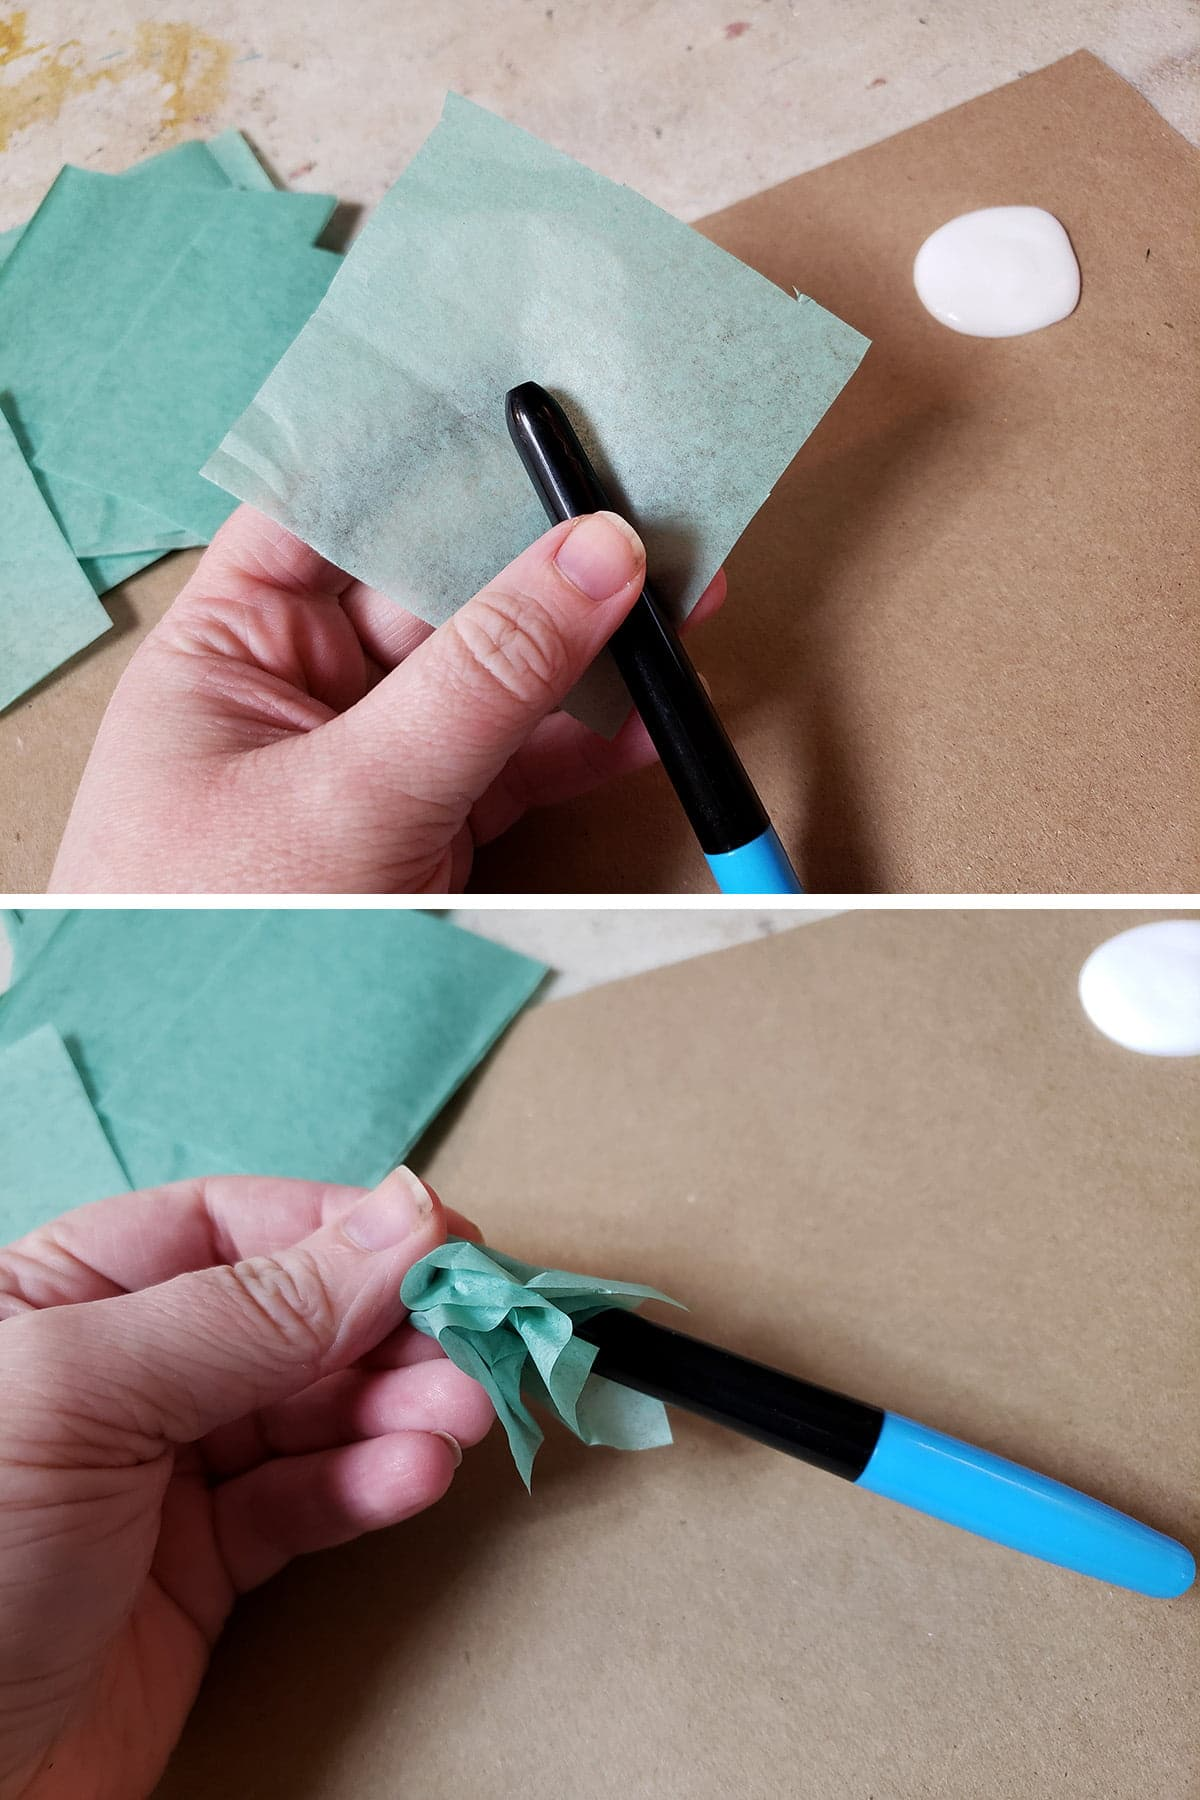 A two part compilation image shows a square of tissue being wrapped down around a pen.